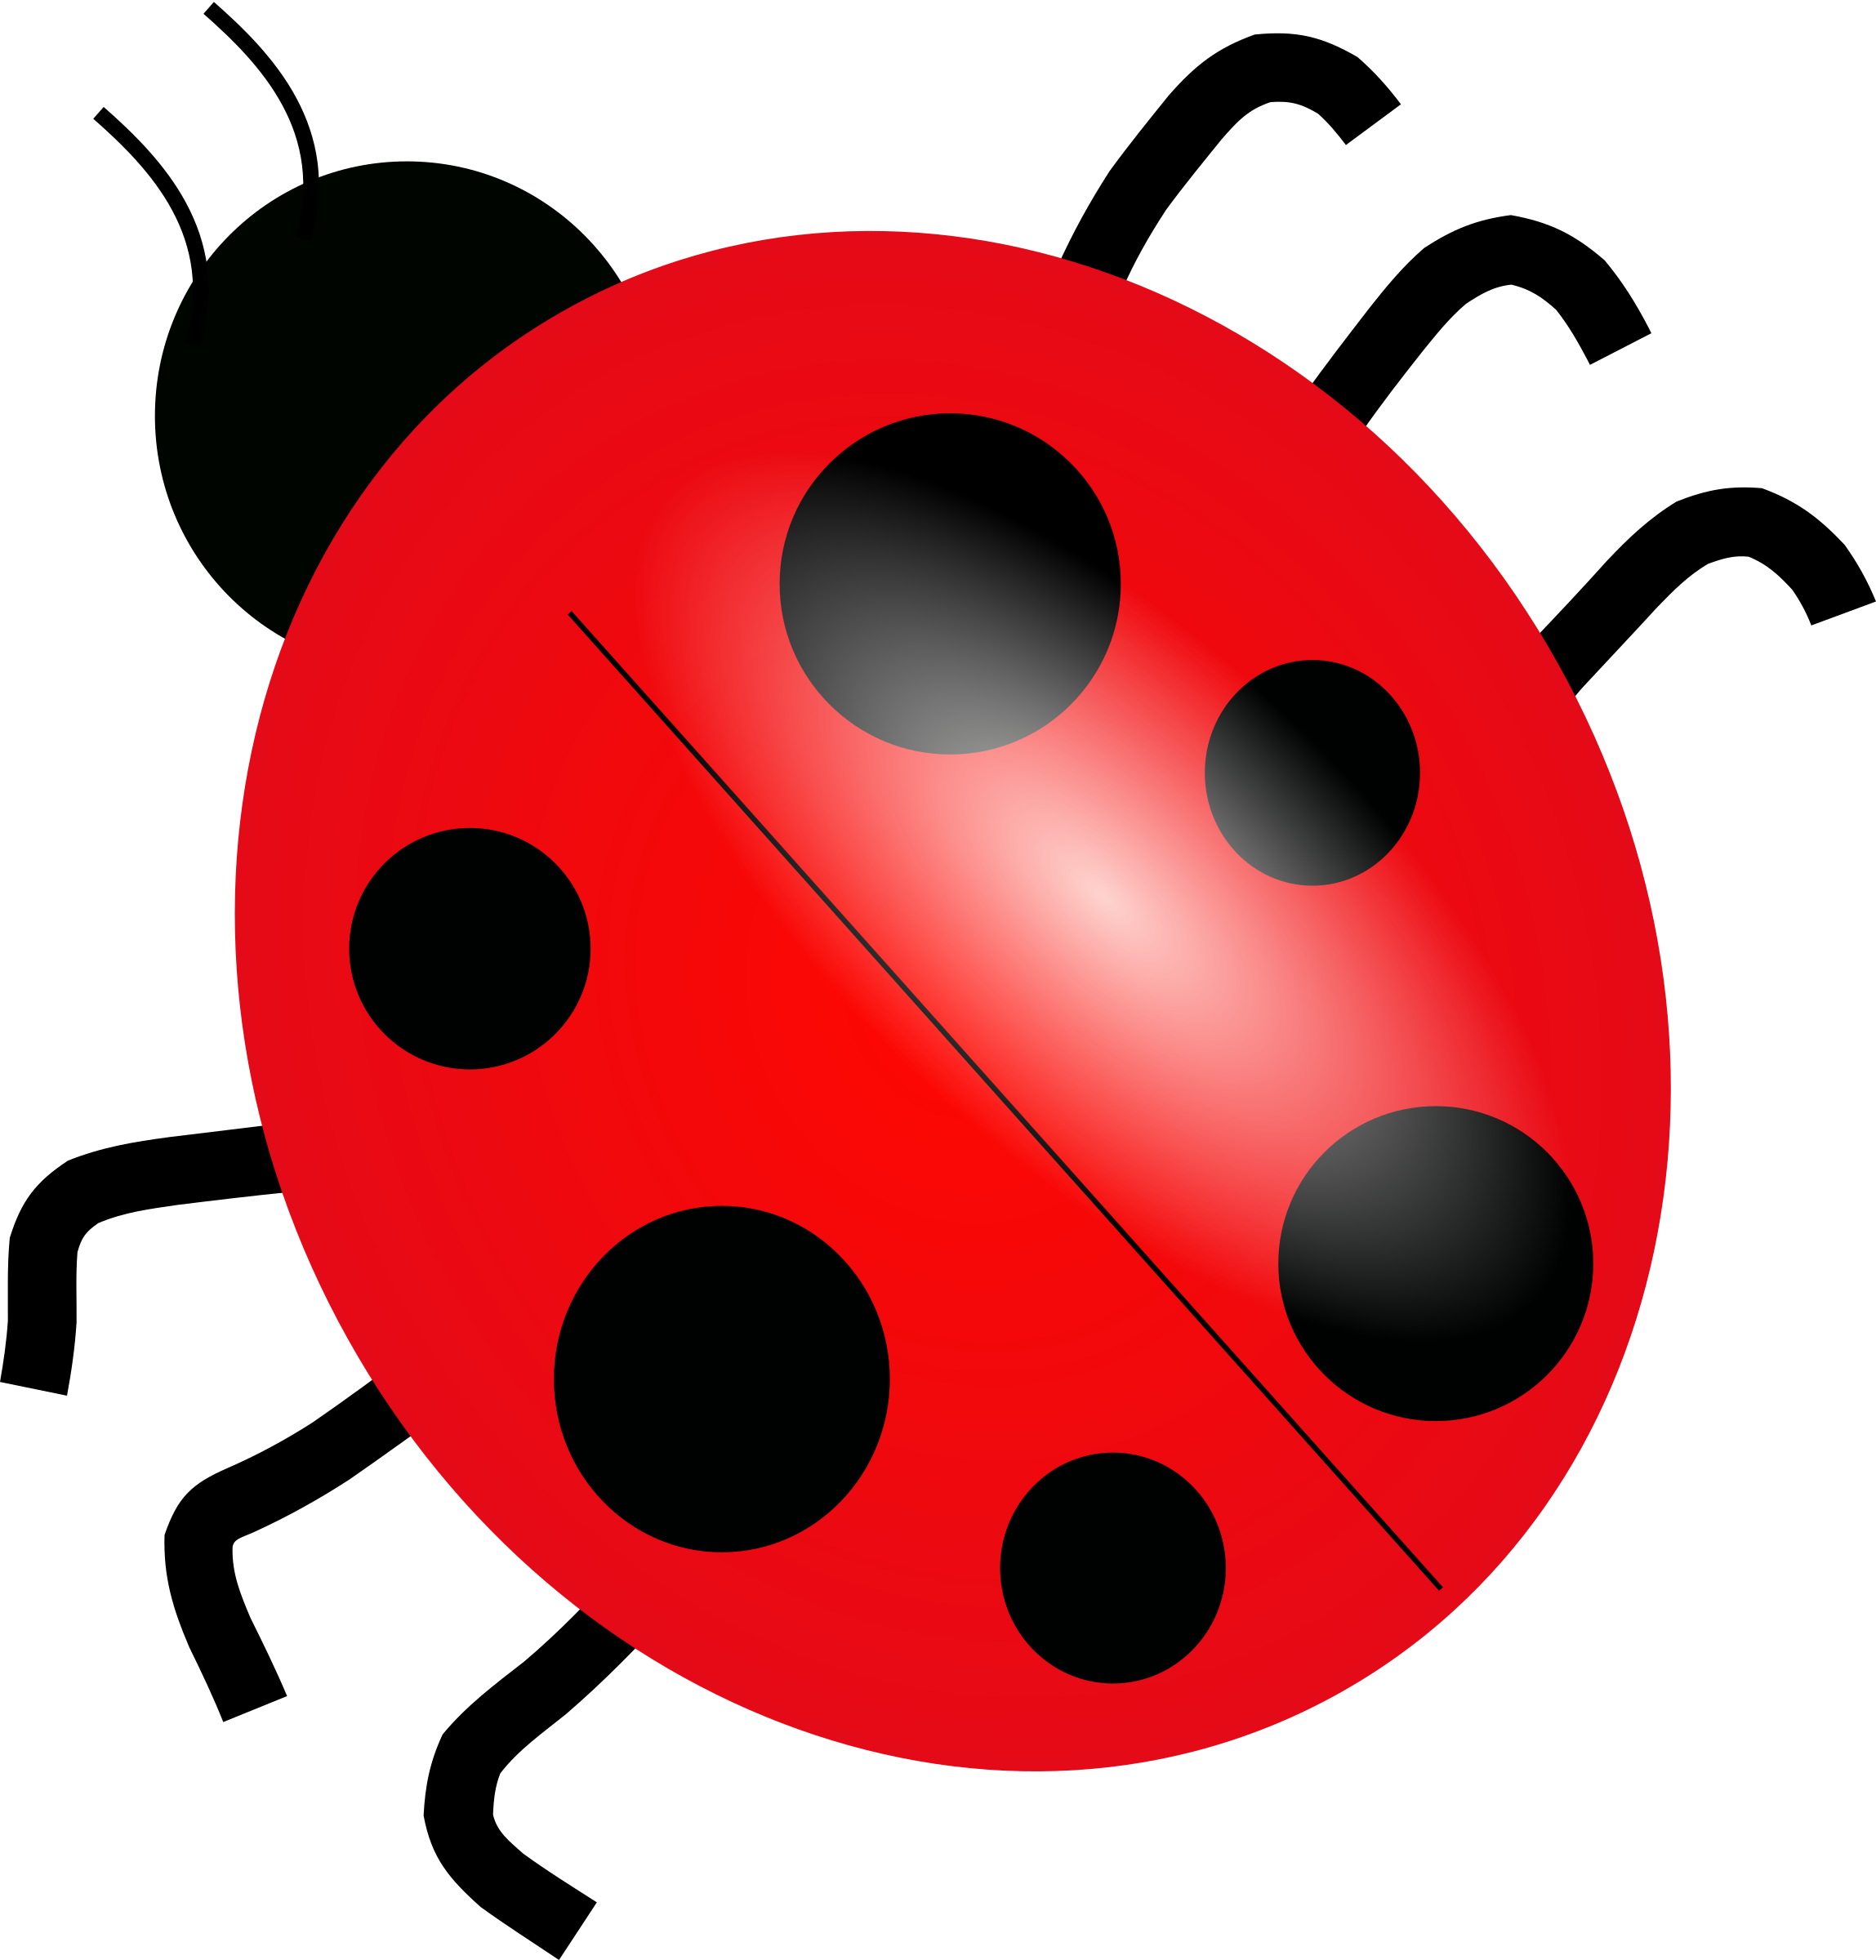 Ladybug clipart cartoon, Ladybug cartoon Transparent FREE.